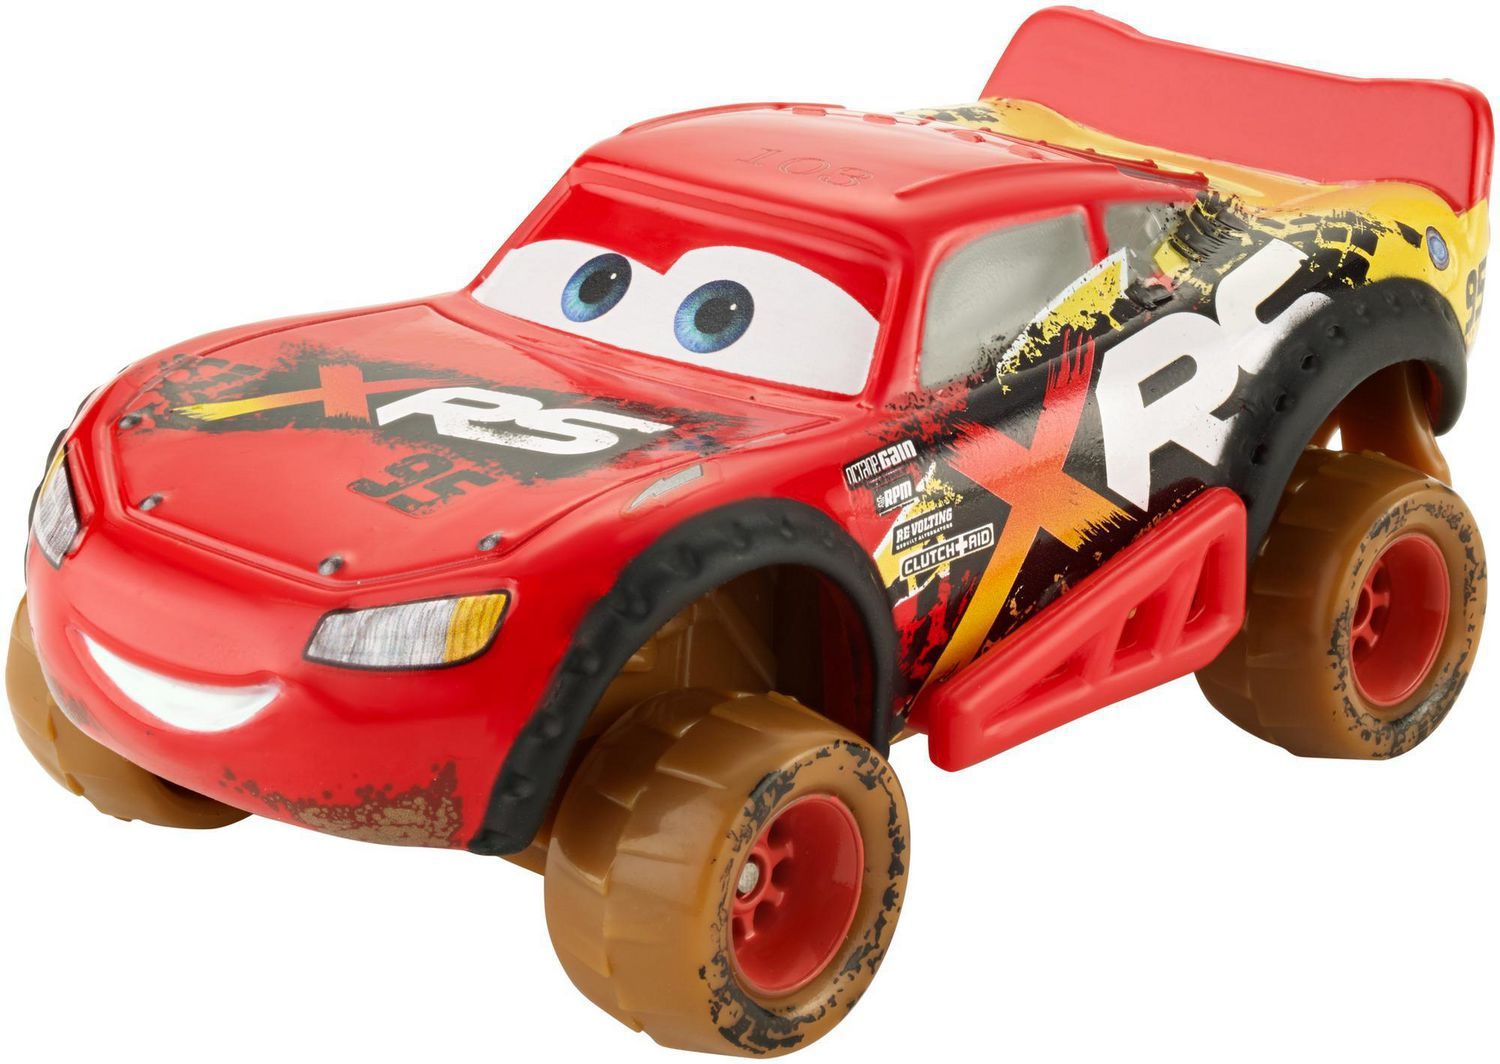 Mattel Disney Cars Mud Racing Diecast Jackson Storm SALE!!!!